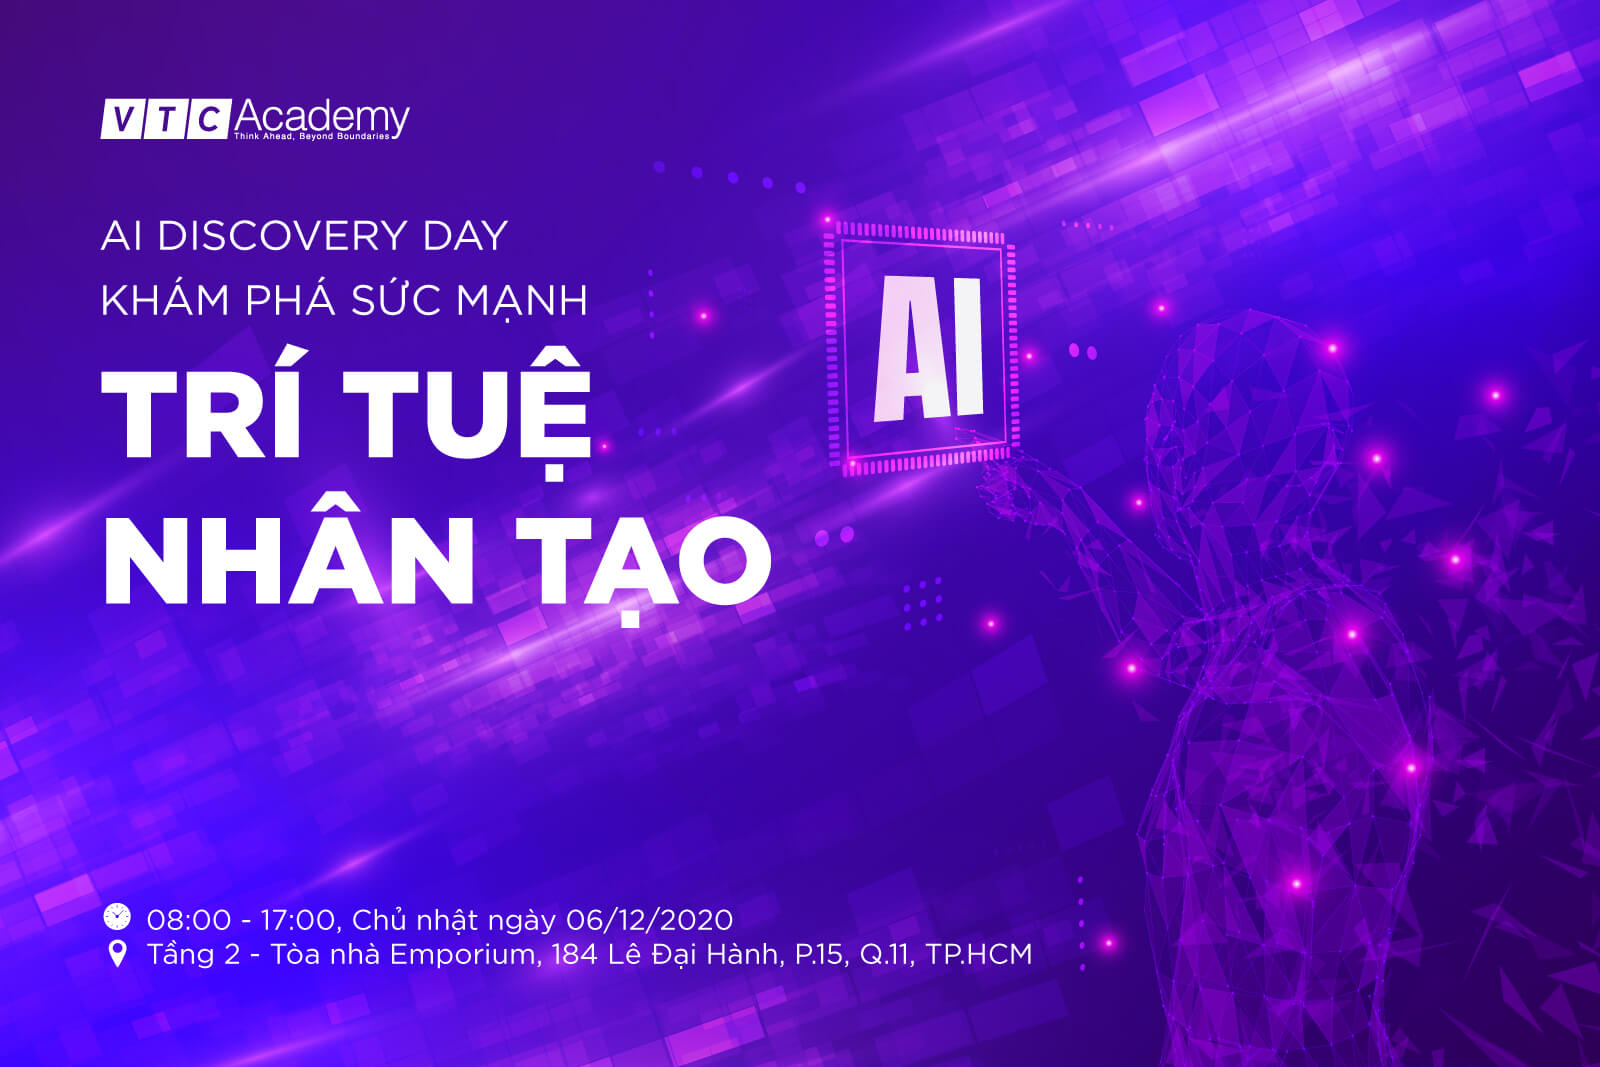 AI Discovery Day